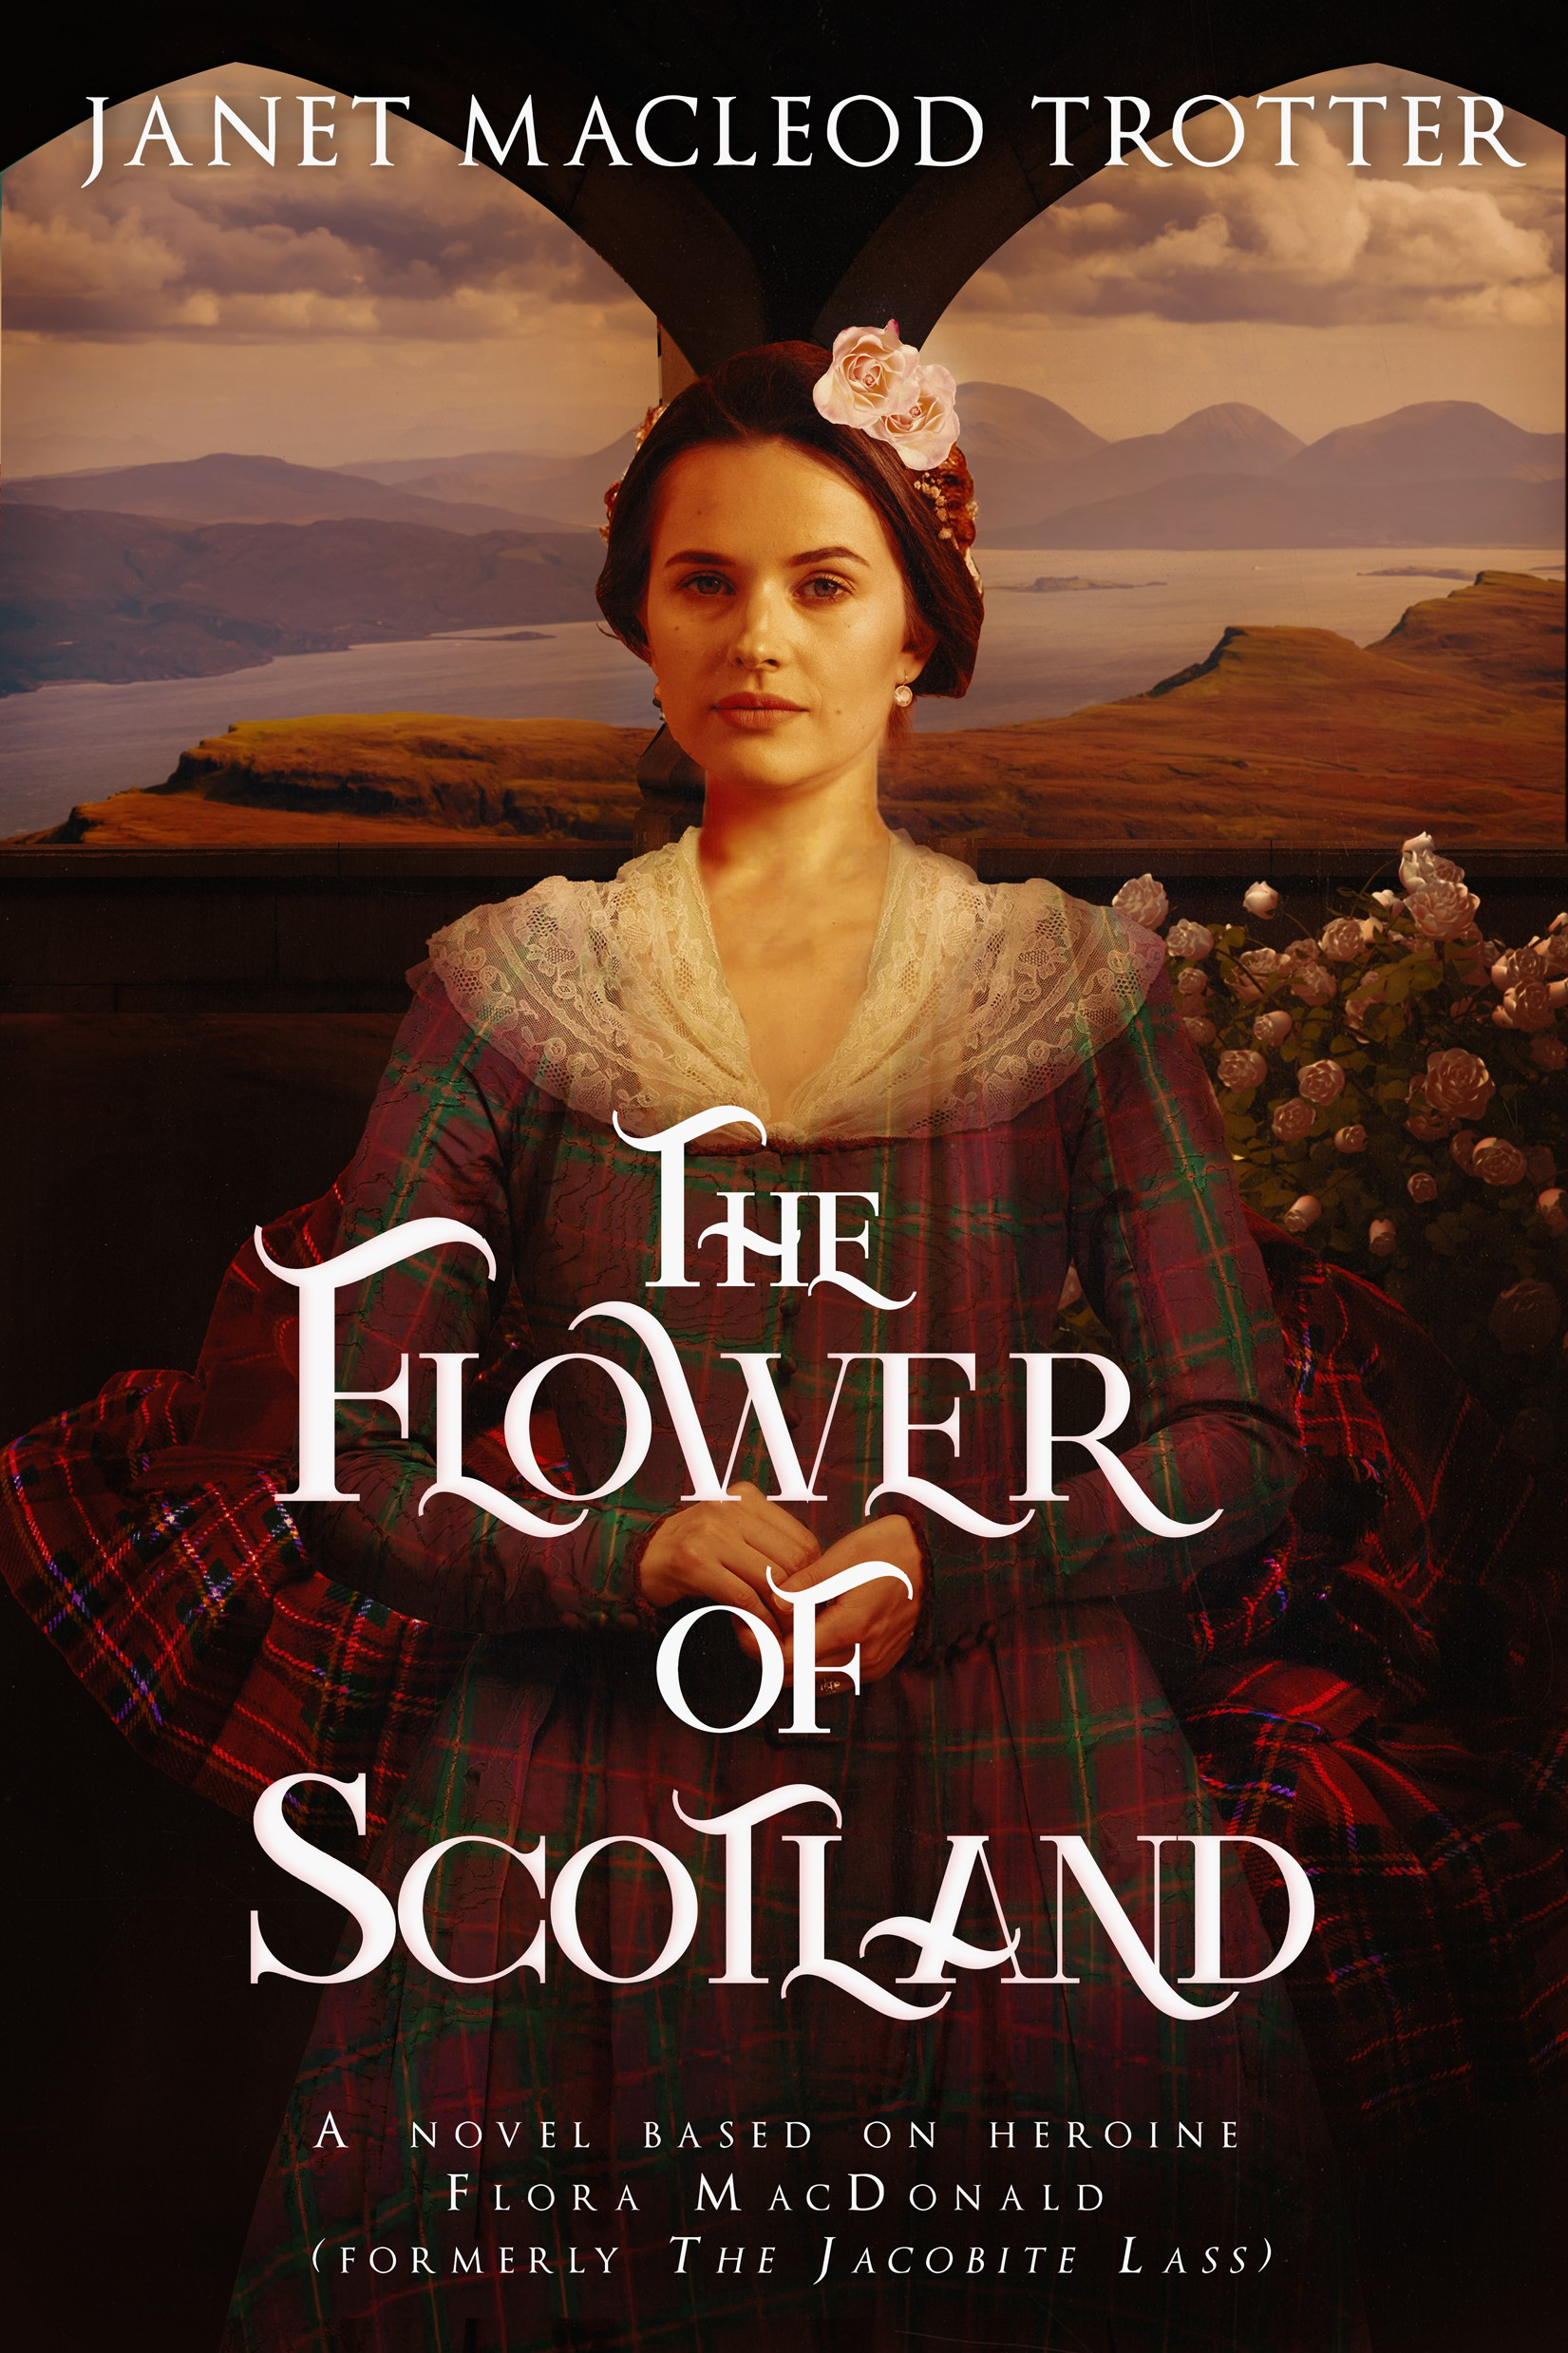 A great ebook cover for Scottish historical novel that will wow women readers.